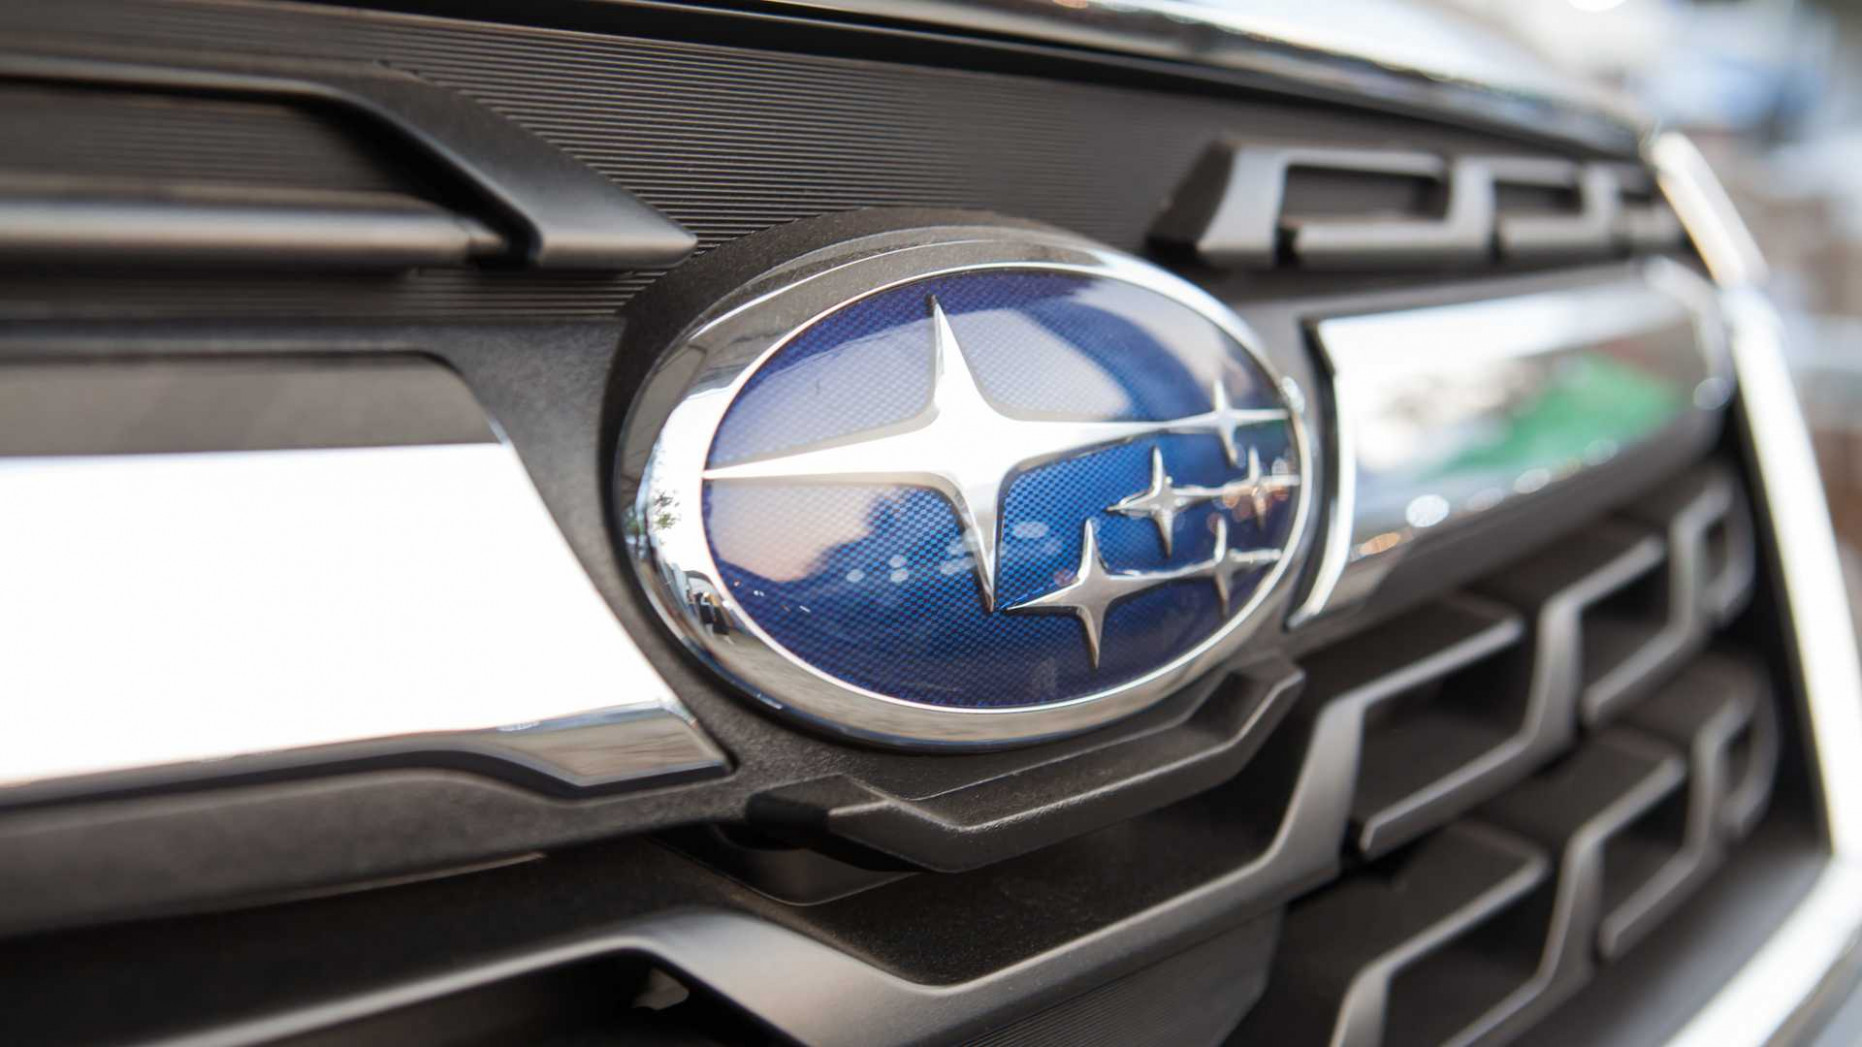 What's Included With Your Subaru Warranty?